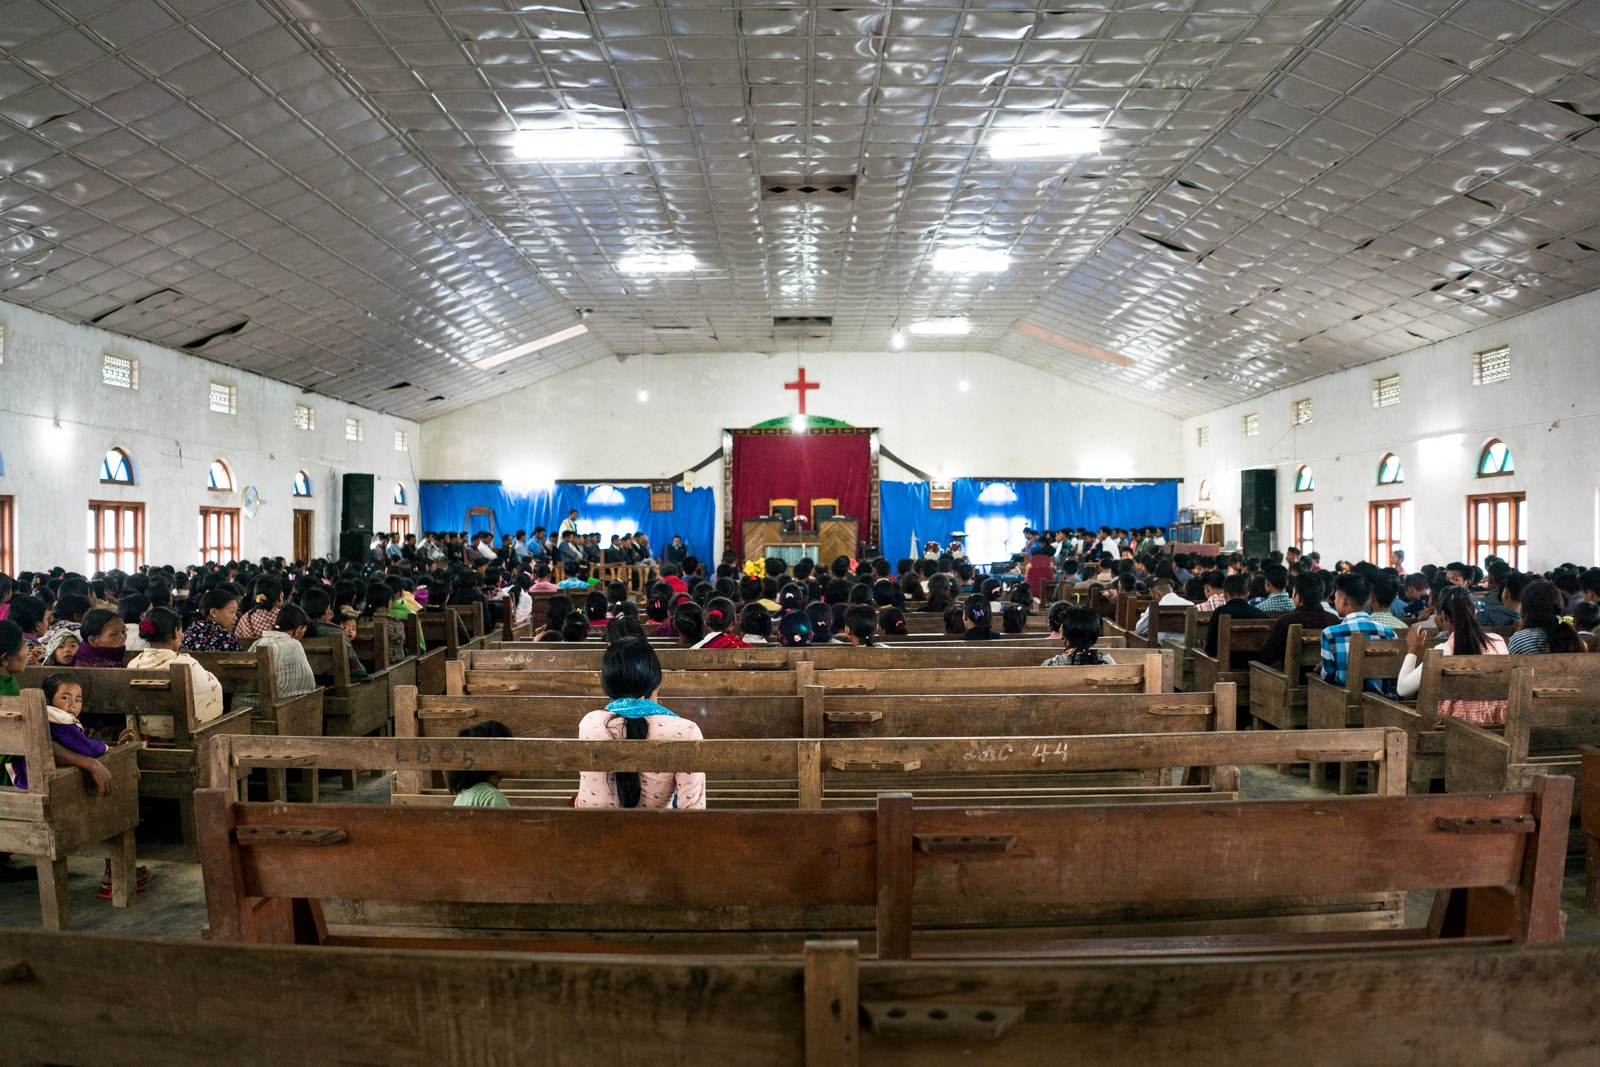 Opium and Jesus and headhunting in Longwa Village, Nagaland, India - Interior of Longwa church during Sunday service - Lost With Purpose